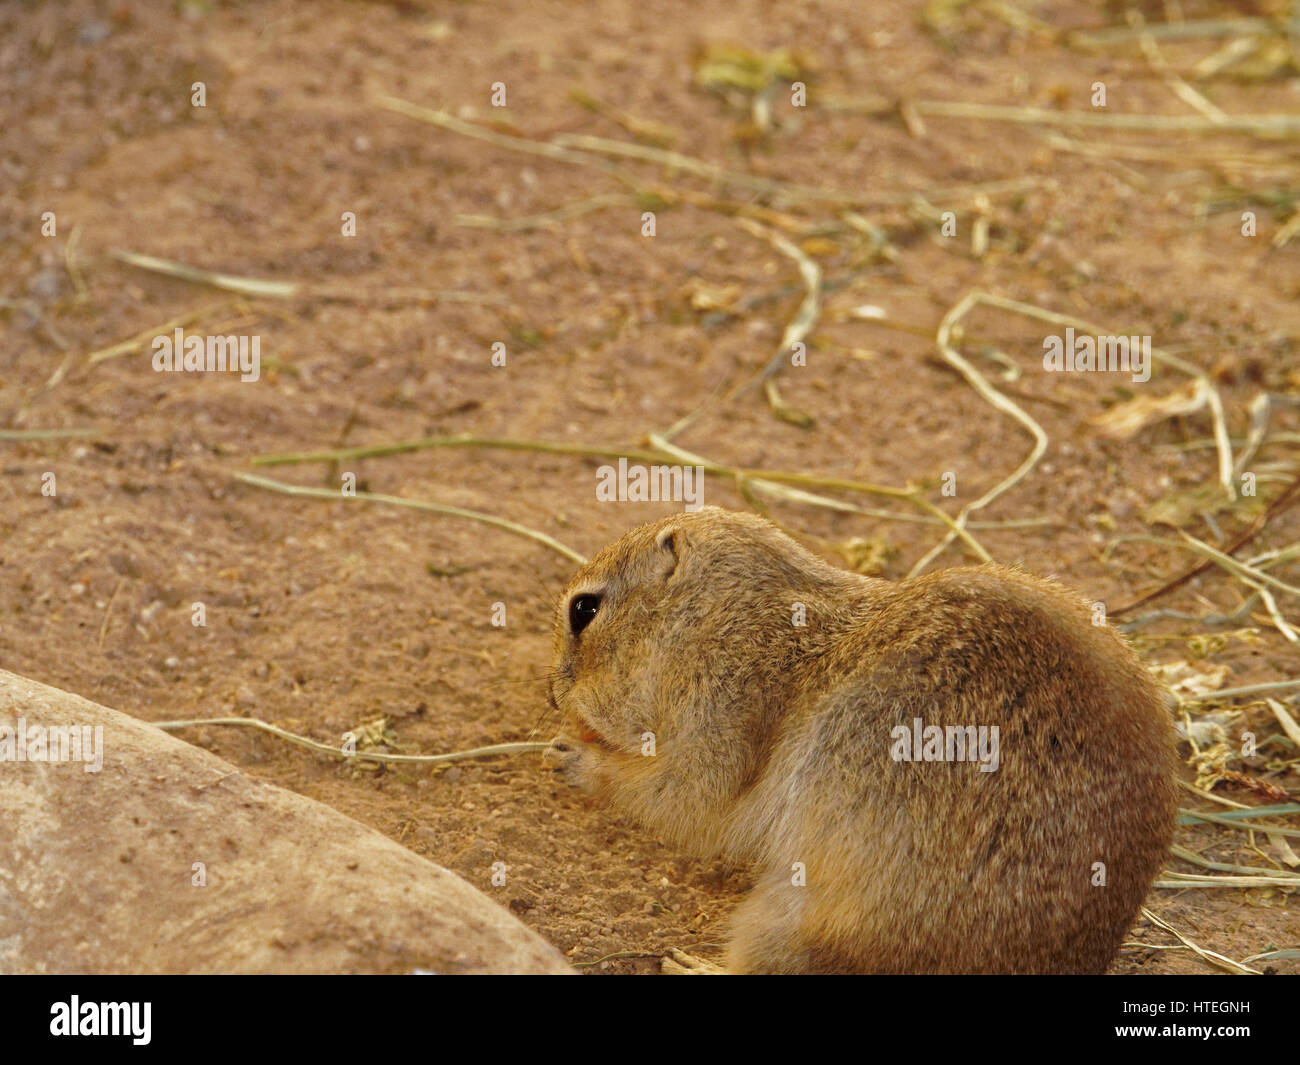 black-tailed prairie dog, Plains prairie dog (Cynomys ludovicianus), nibbling on a carrot - Stock Image